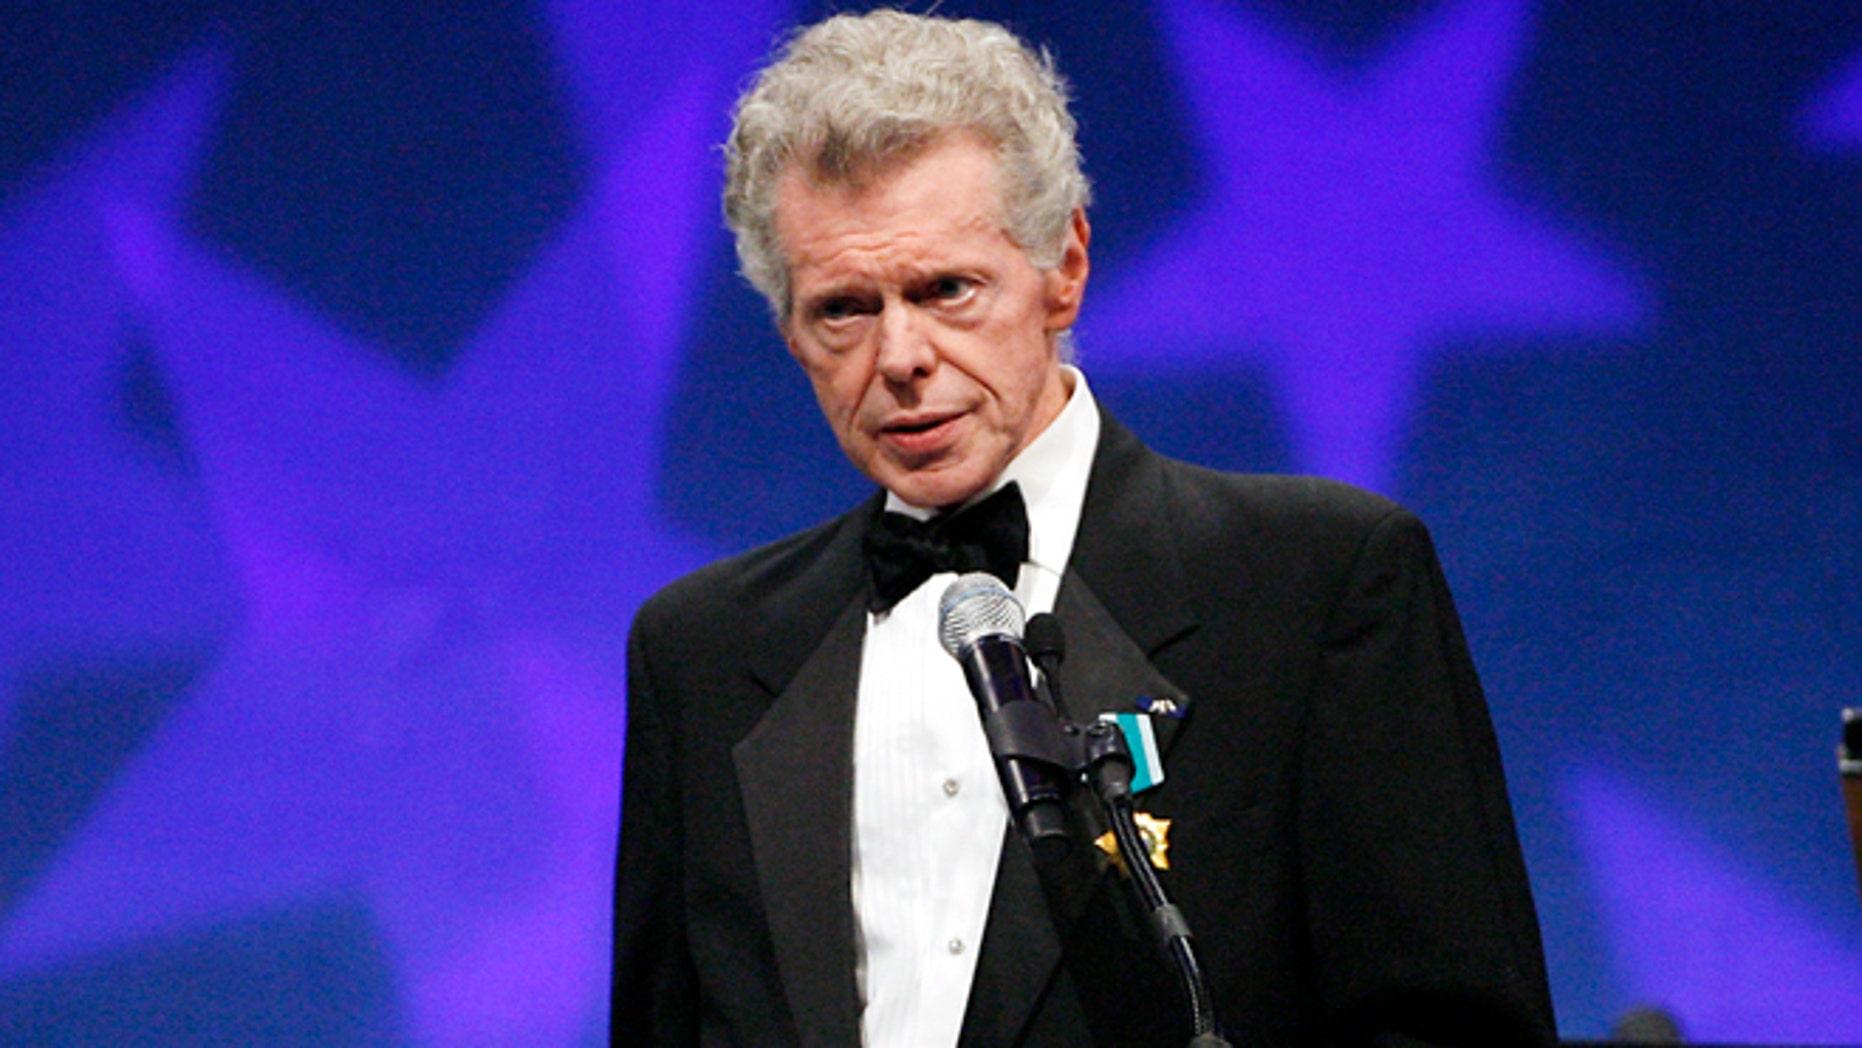 This Sept. 18, 2008 file photo shows pianist Van Cliburn at the presentation ceremony of the Liberty Medal that was presented to former President of the Soviet Union Mikhail Gorbachev in Philadelphia.